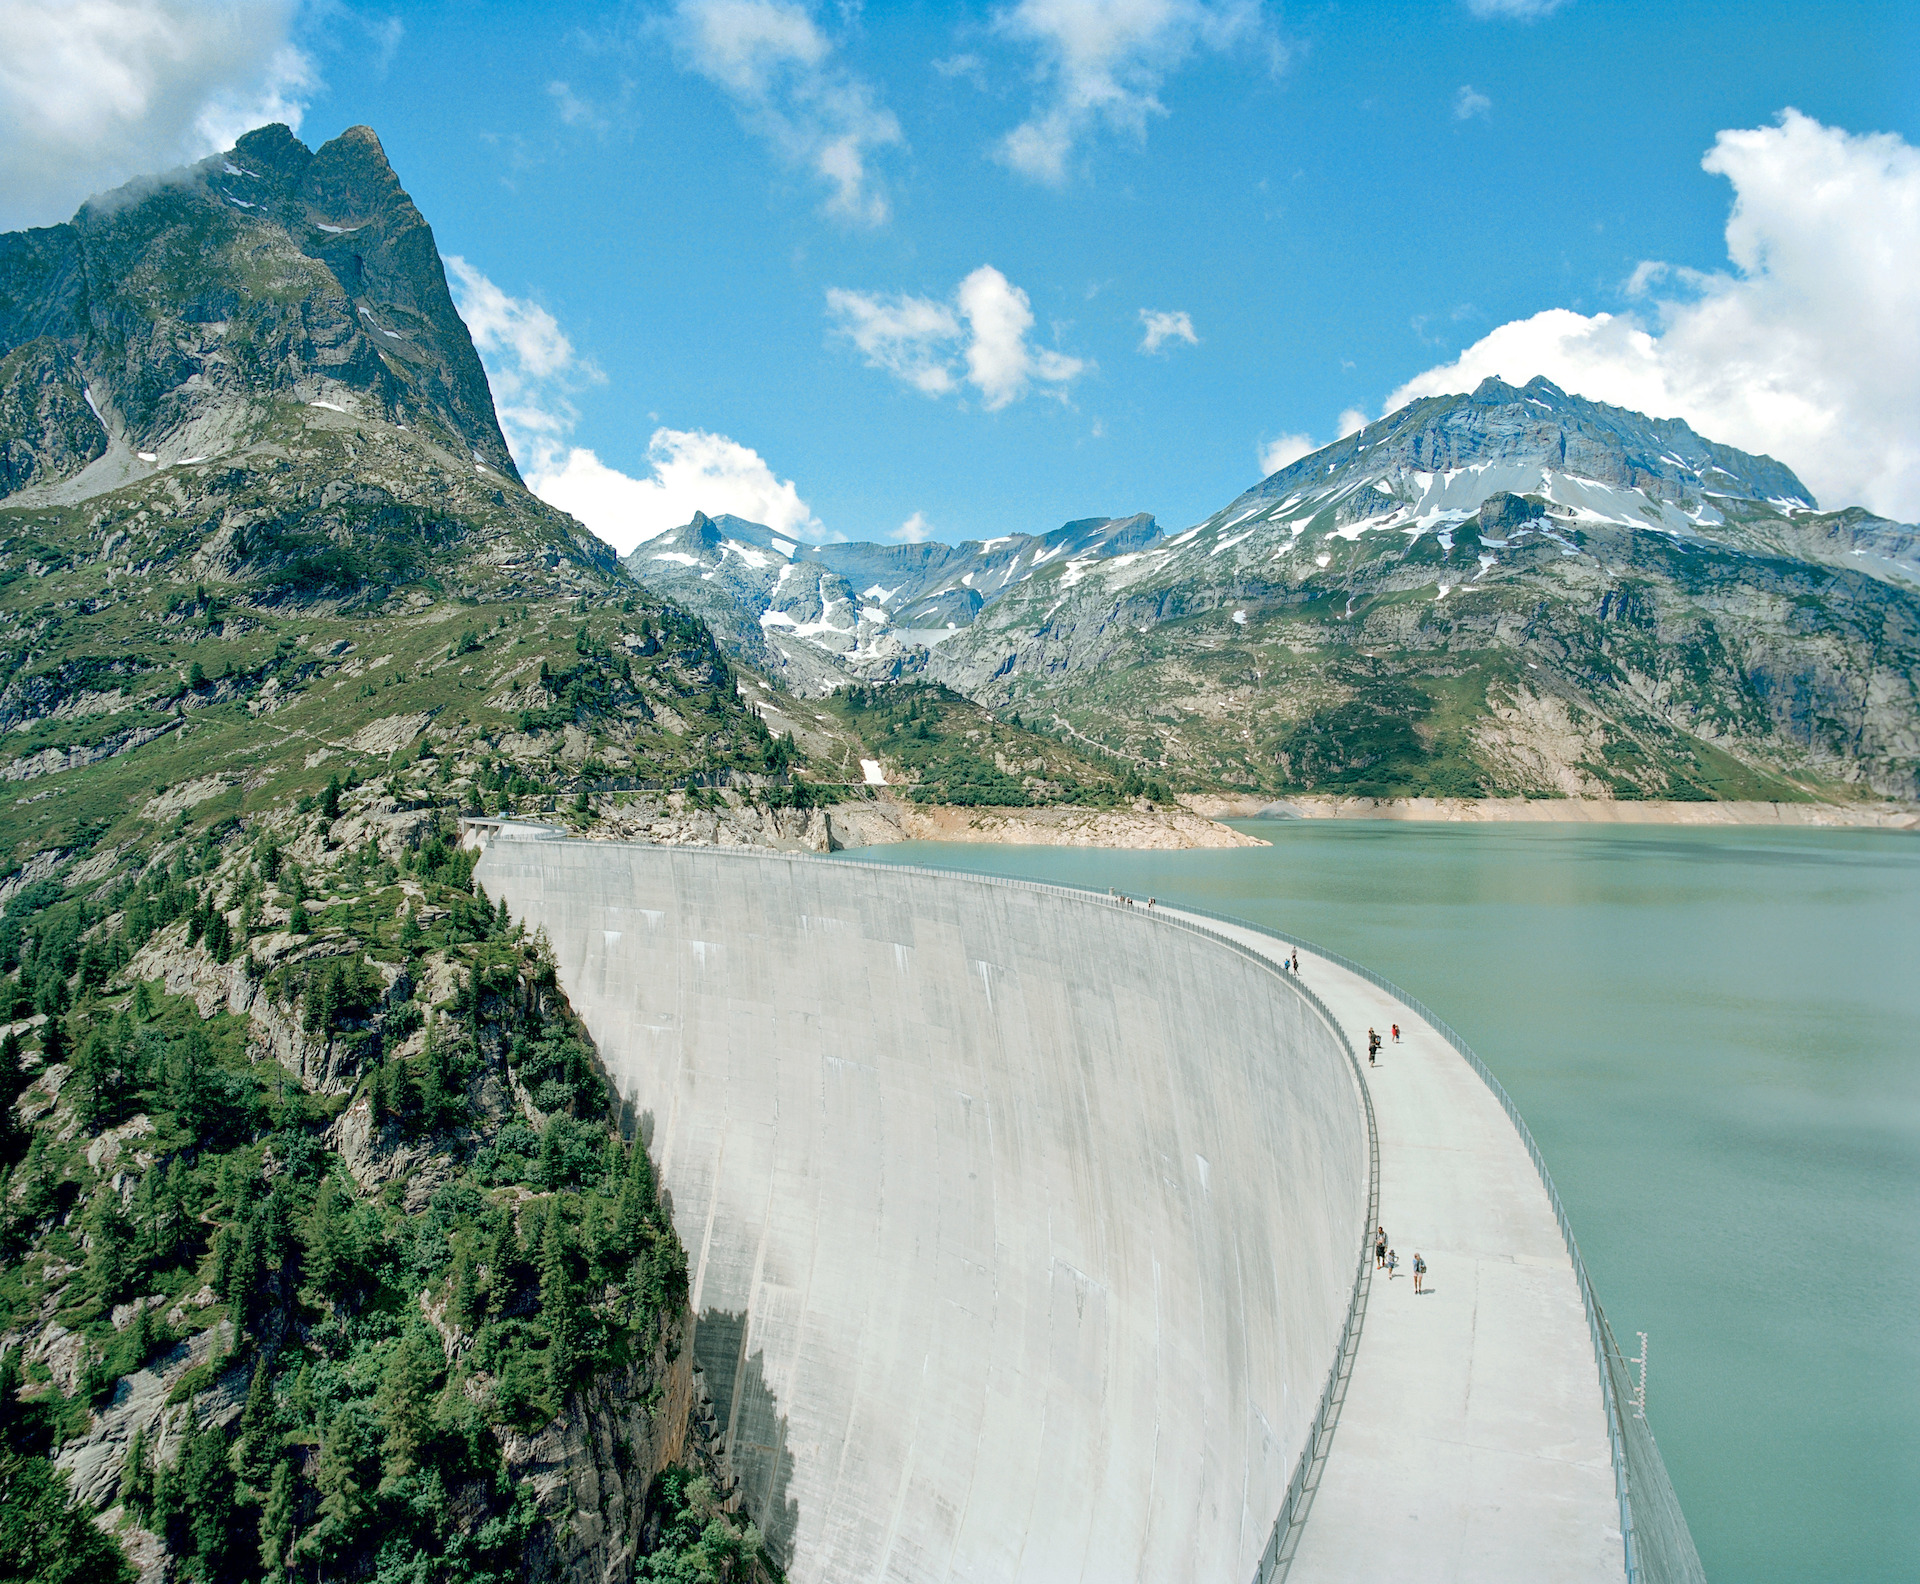 Bloomberg Markets - Dams, Switzerland